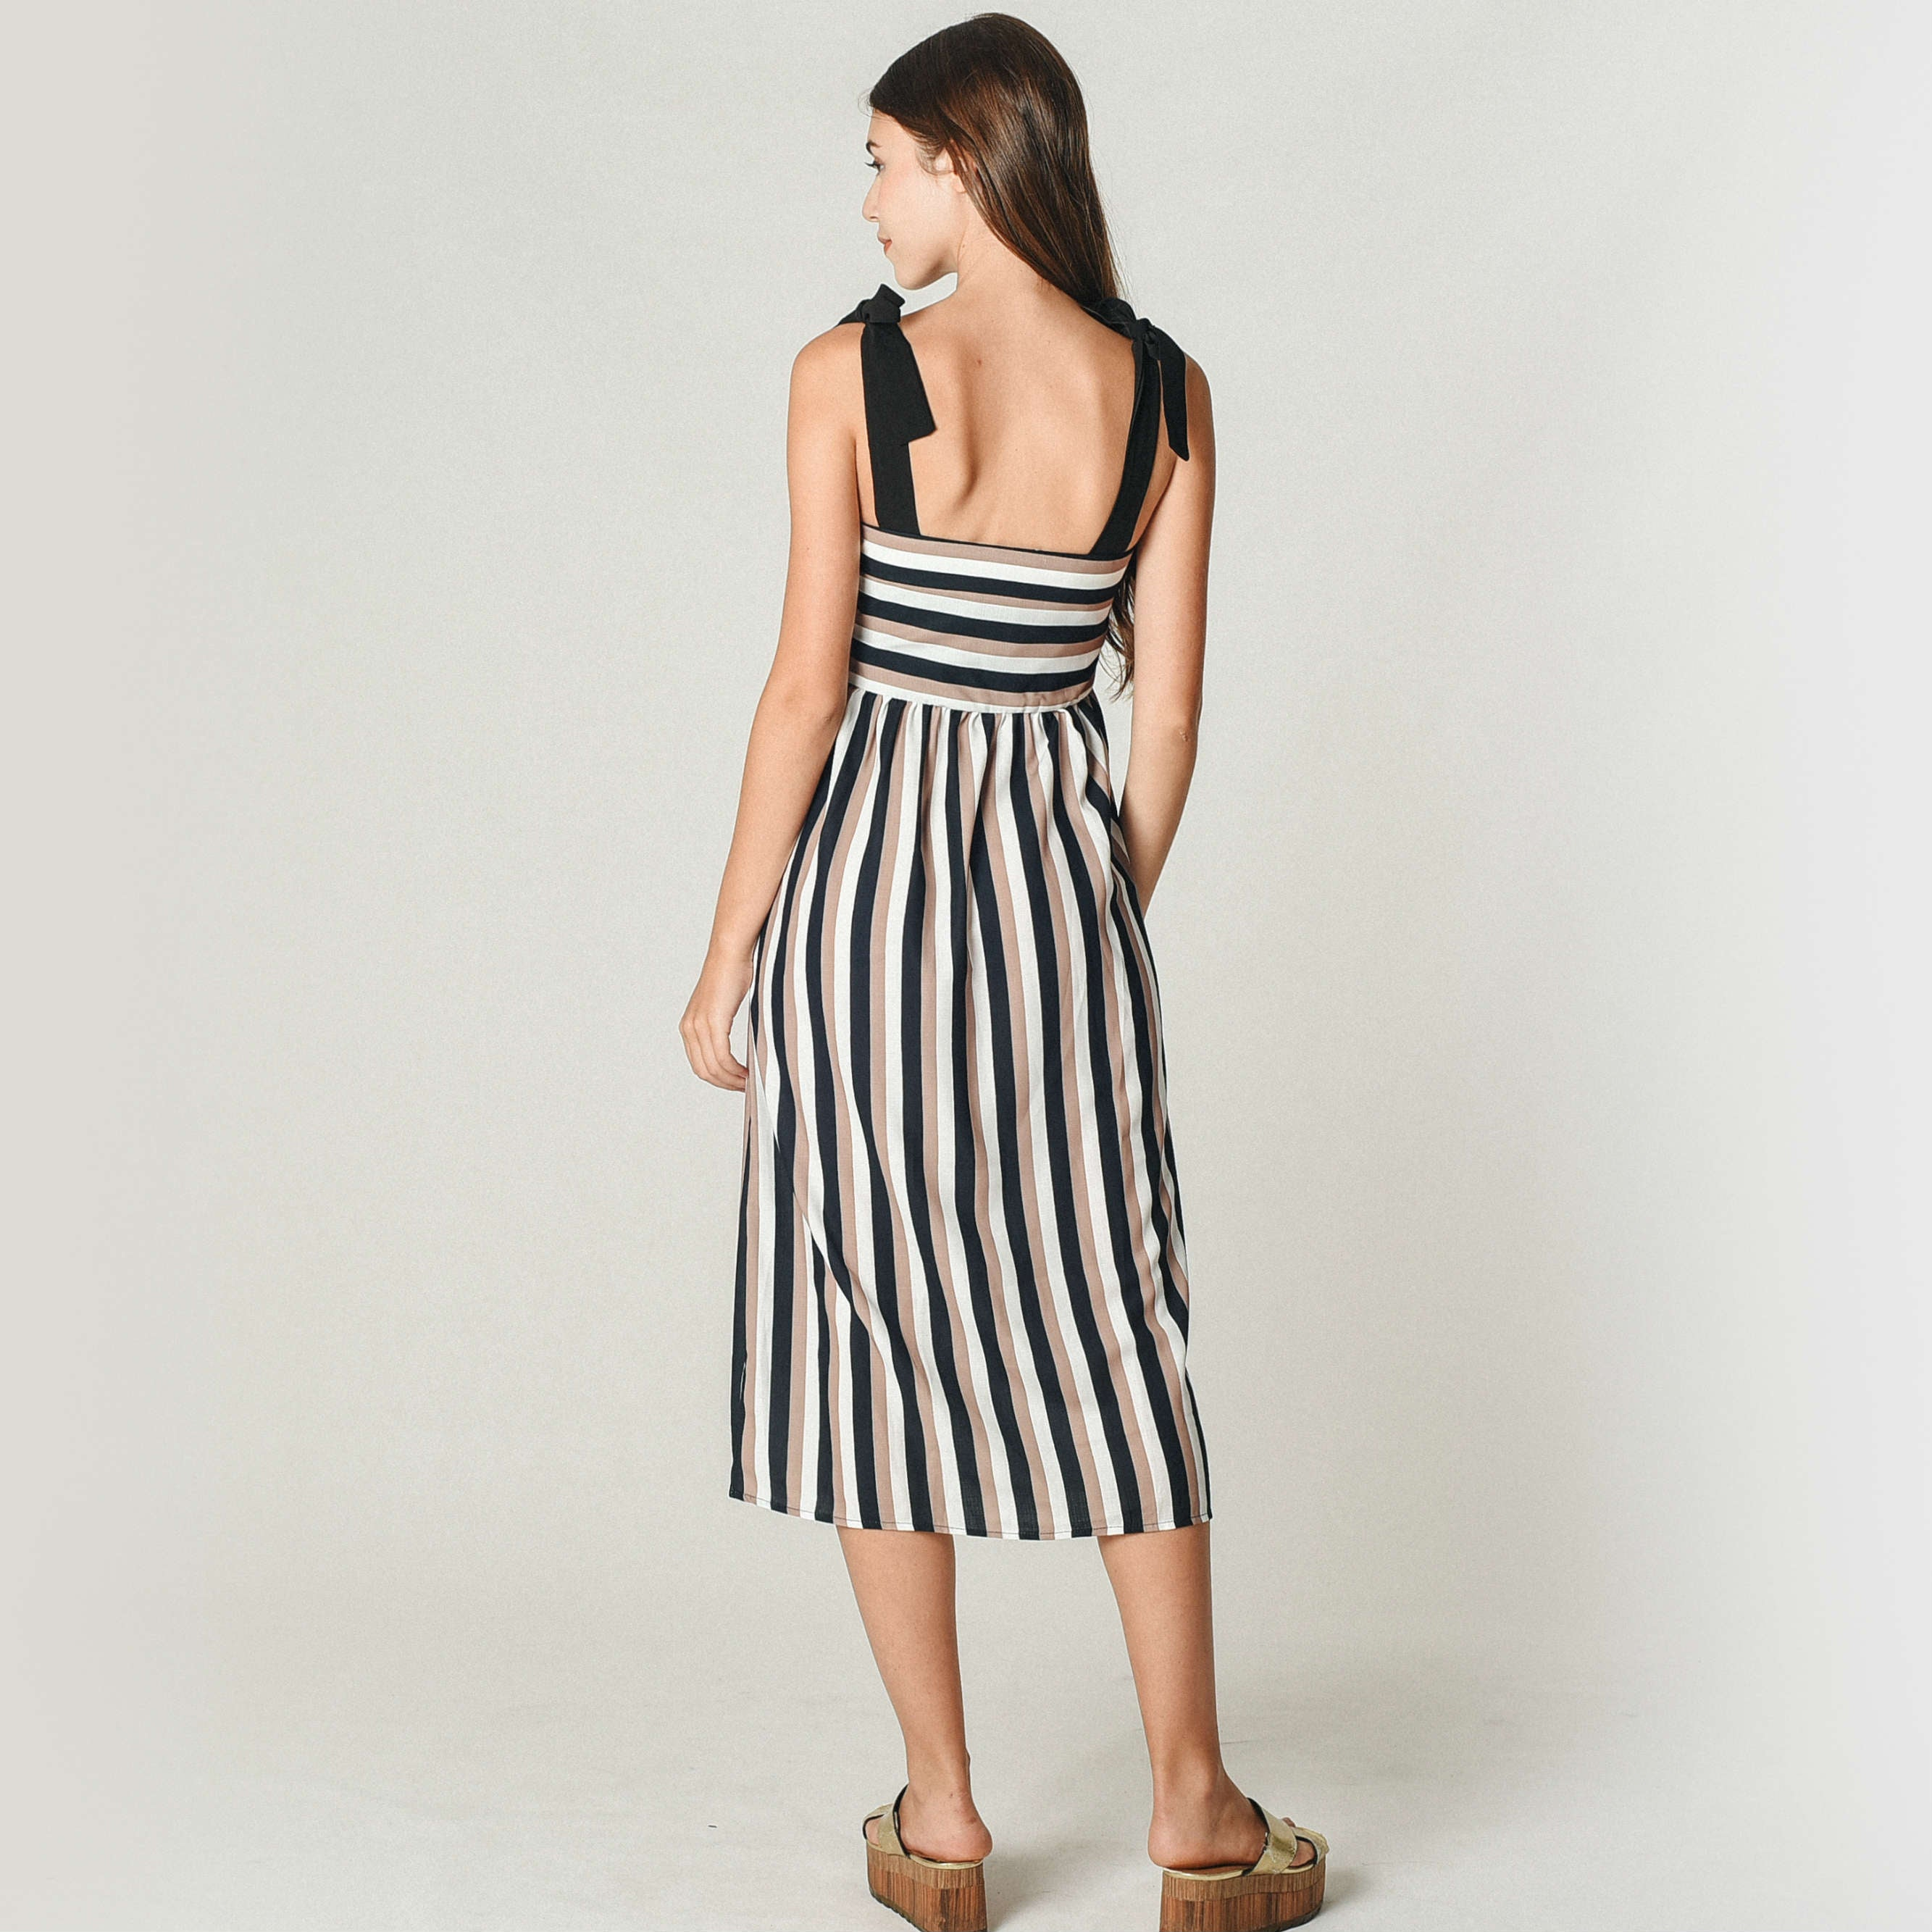 Feryn Striped Ribbon Dress